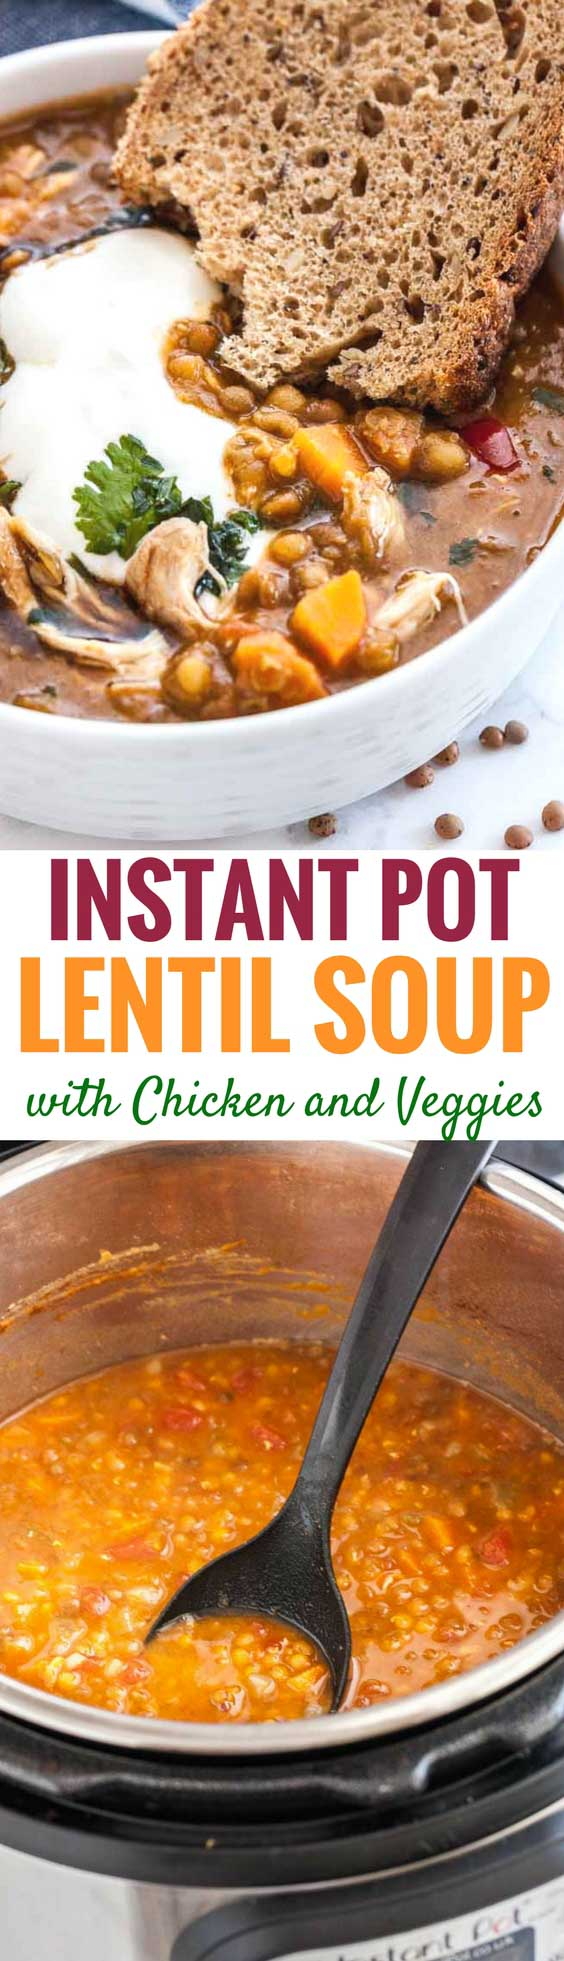 This Instant Pot Lentil Soup is loaded with flavorful vegetables, brown lentils, and shredded chicken. An easy, hearty pressure cooker soup recipe that's healthy, easy to make, budget-friendly and perfect for chilly winter days! #soupseason #InstantPot #PressureCooker #Lentilsoup #vegetables #comfortfood